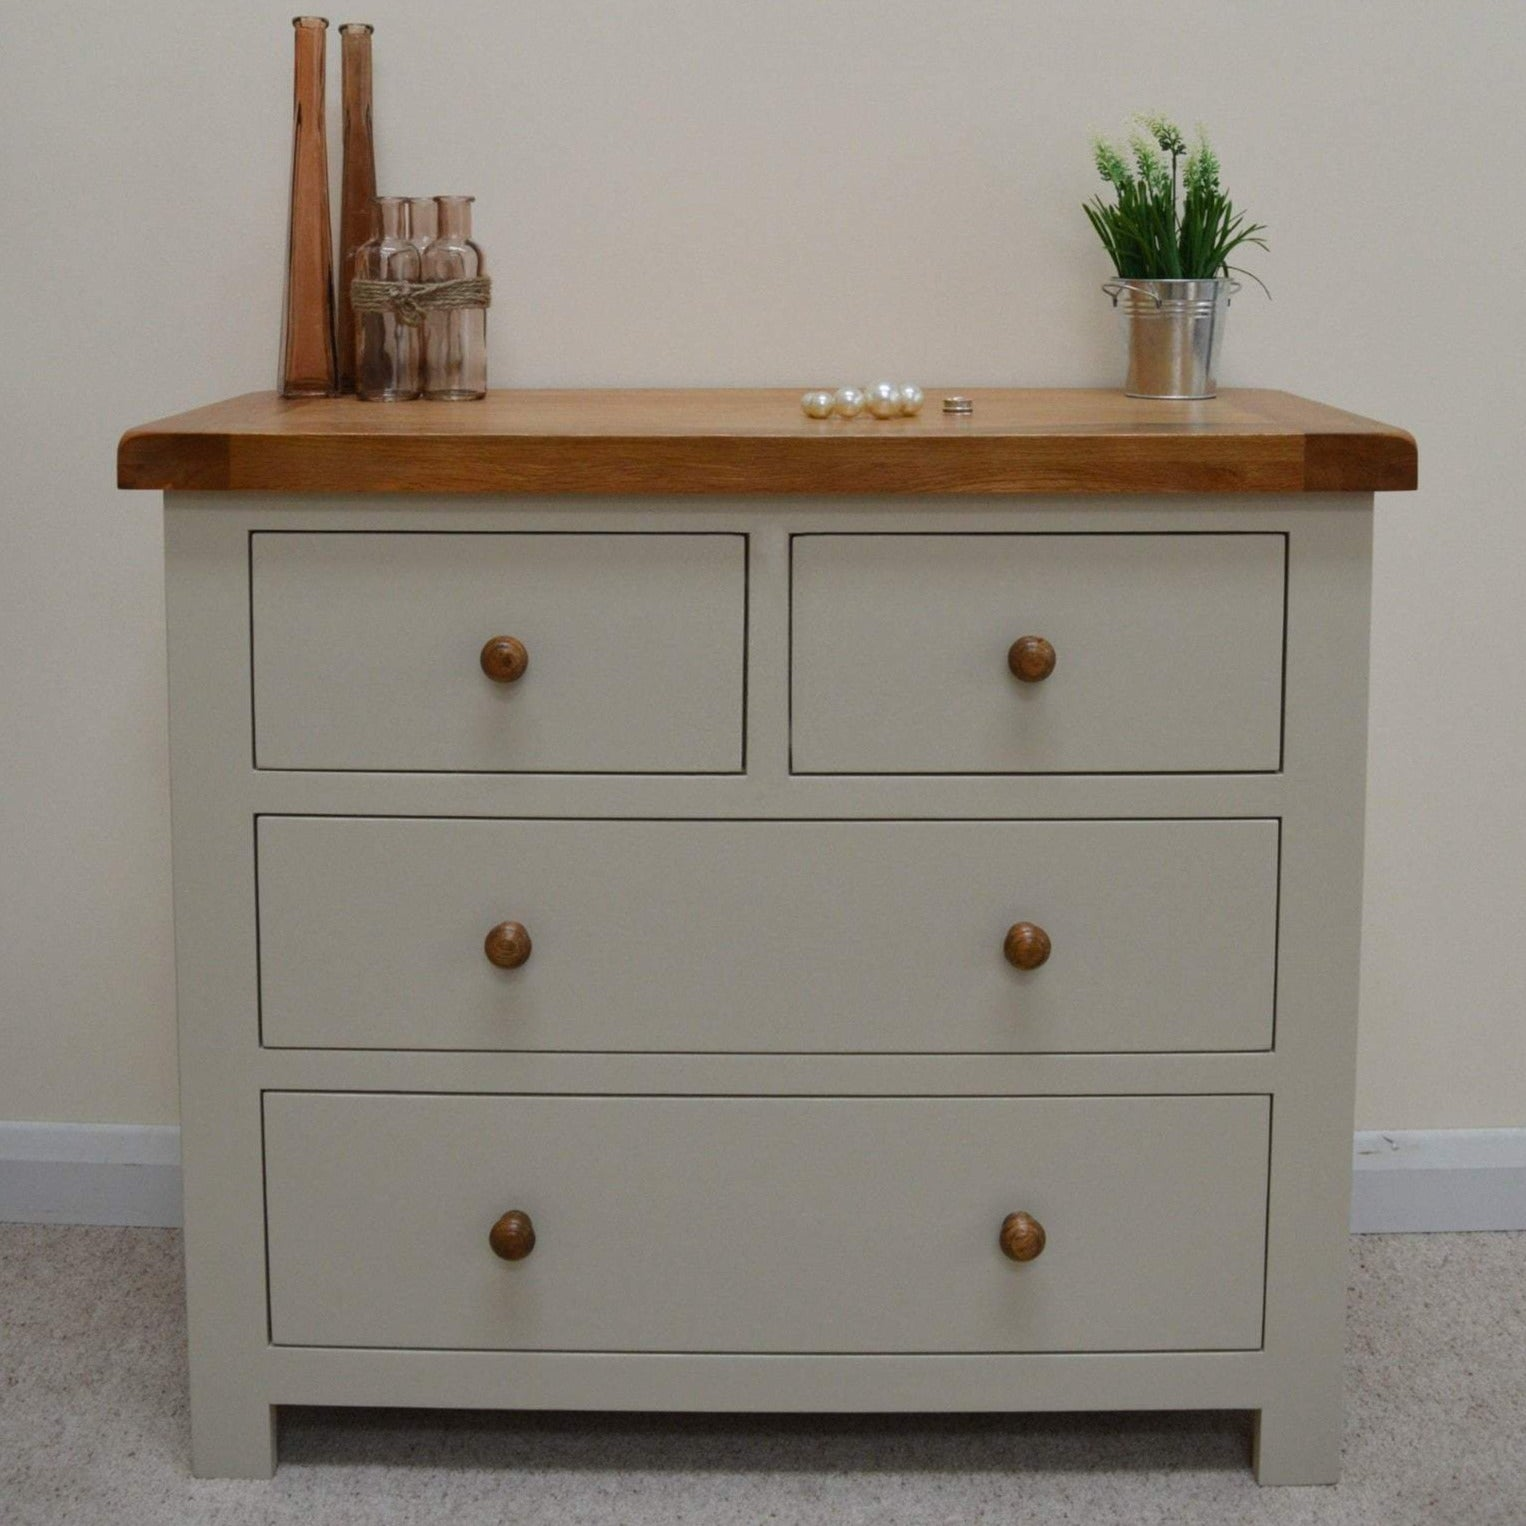 Dining Room Chest Of Drawers: Walcot Painted 4 Drawer Wide Chest Of Drawers (2 Over 2